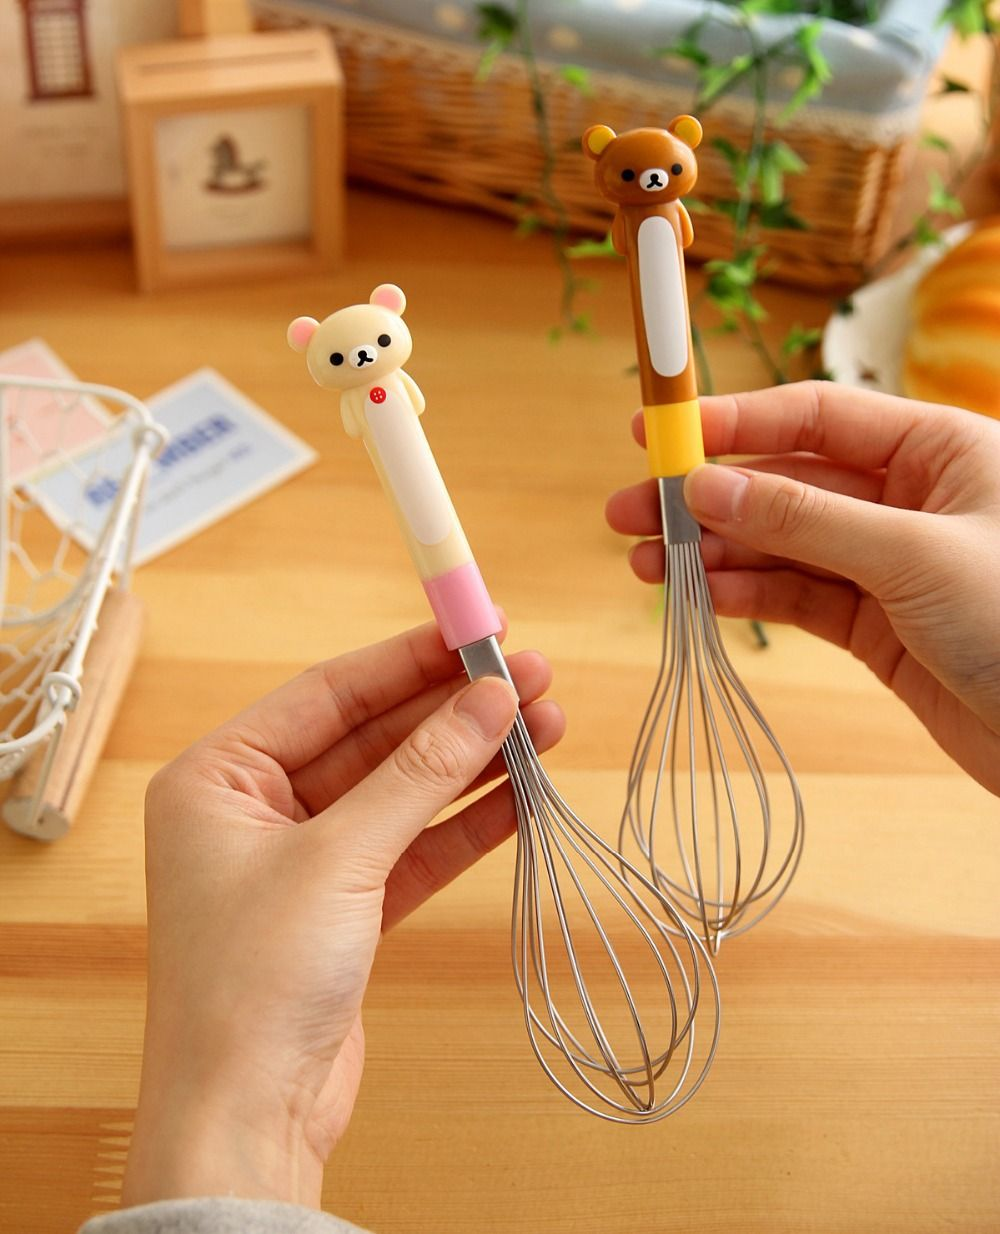 Cheap utensil caddy, Buy Quality home tours directly from